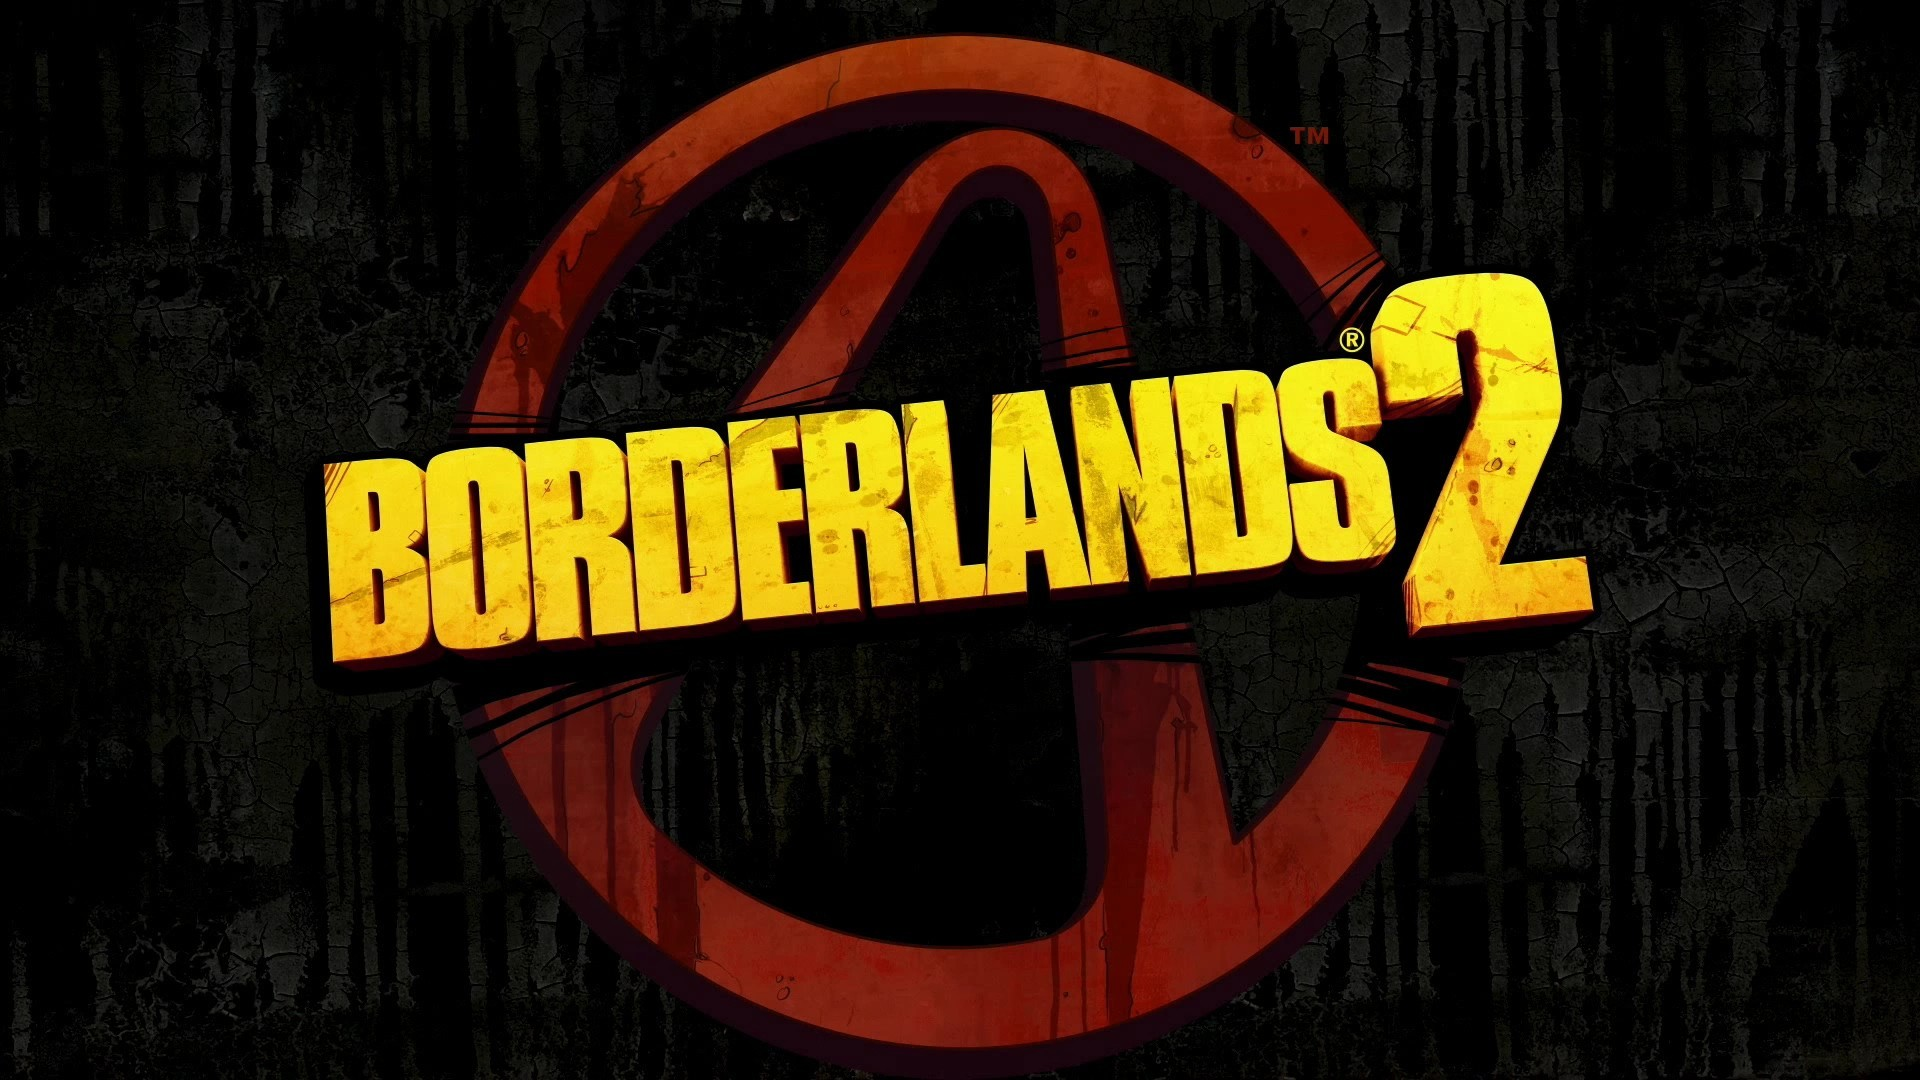 video games Borderlands logos